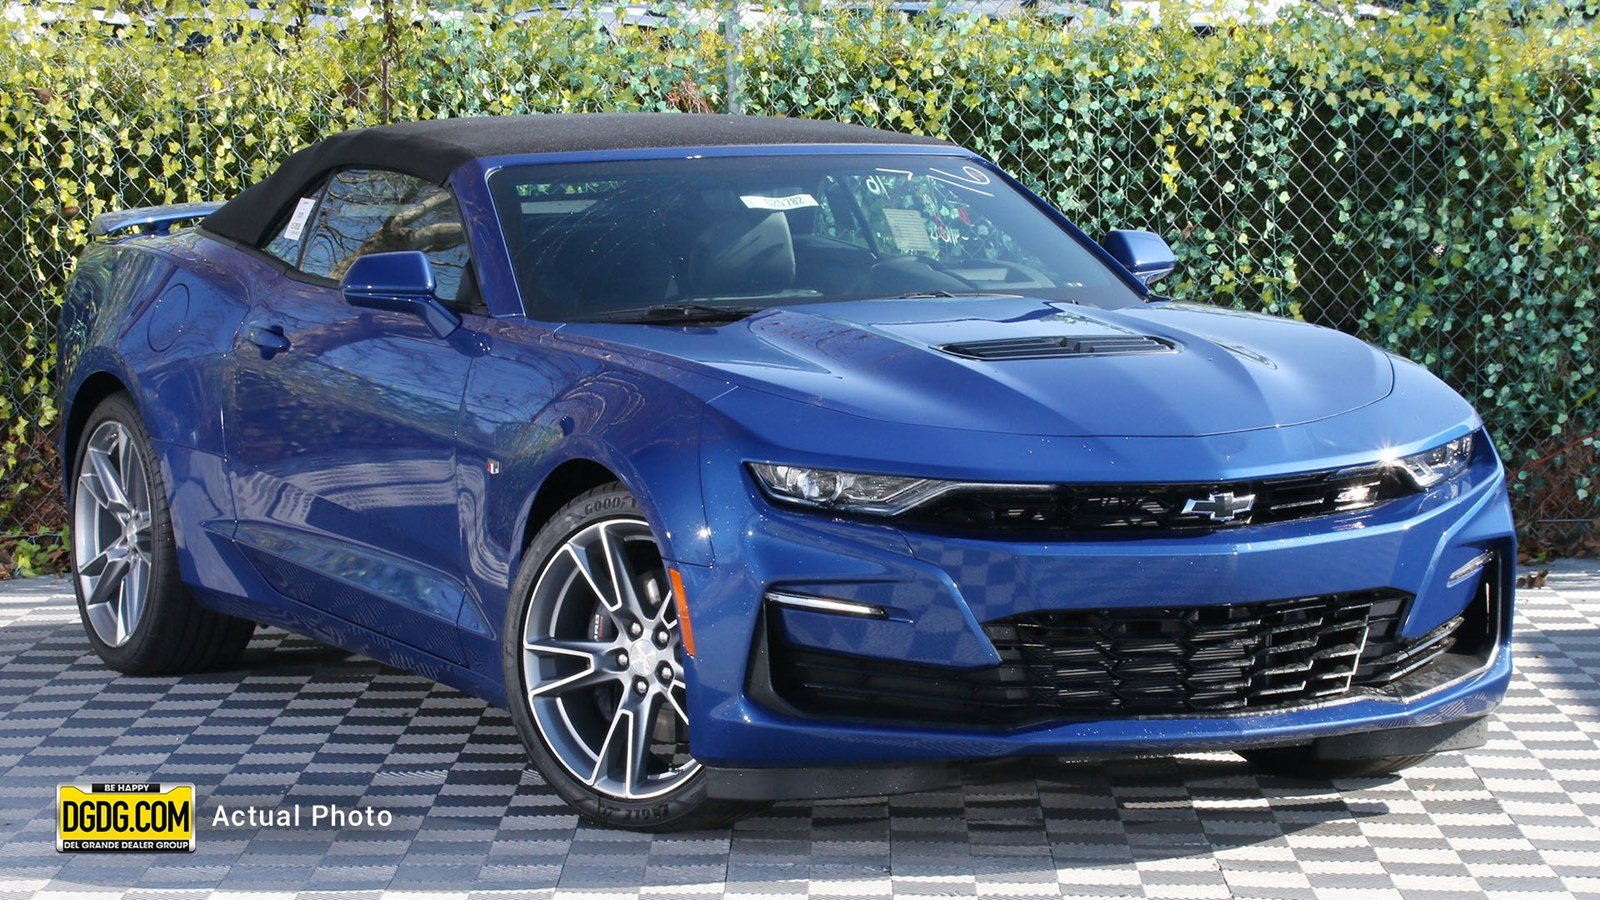 2020 Chevrolet Camaro 2Ss Rwd Convertible 2022 Chevy Camaro Ss Owners Manual, Pictures, Price